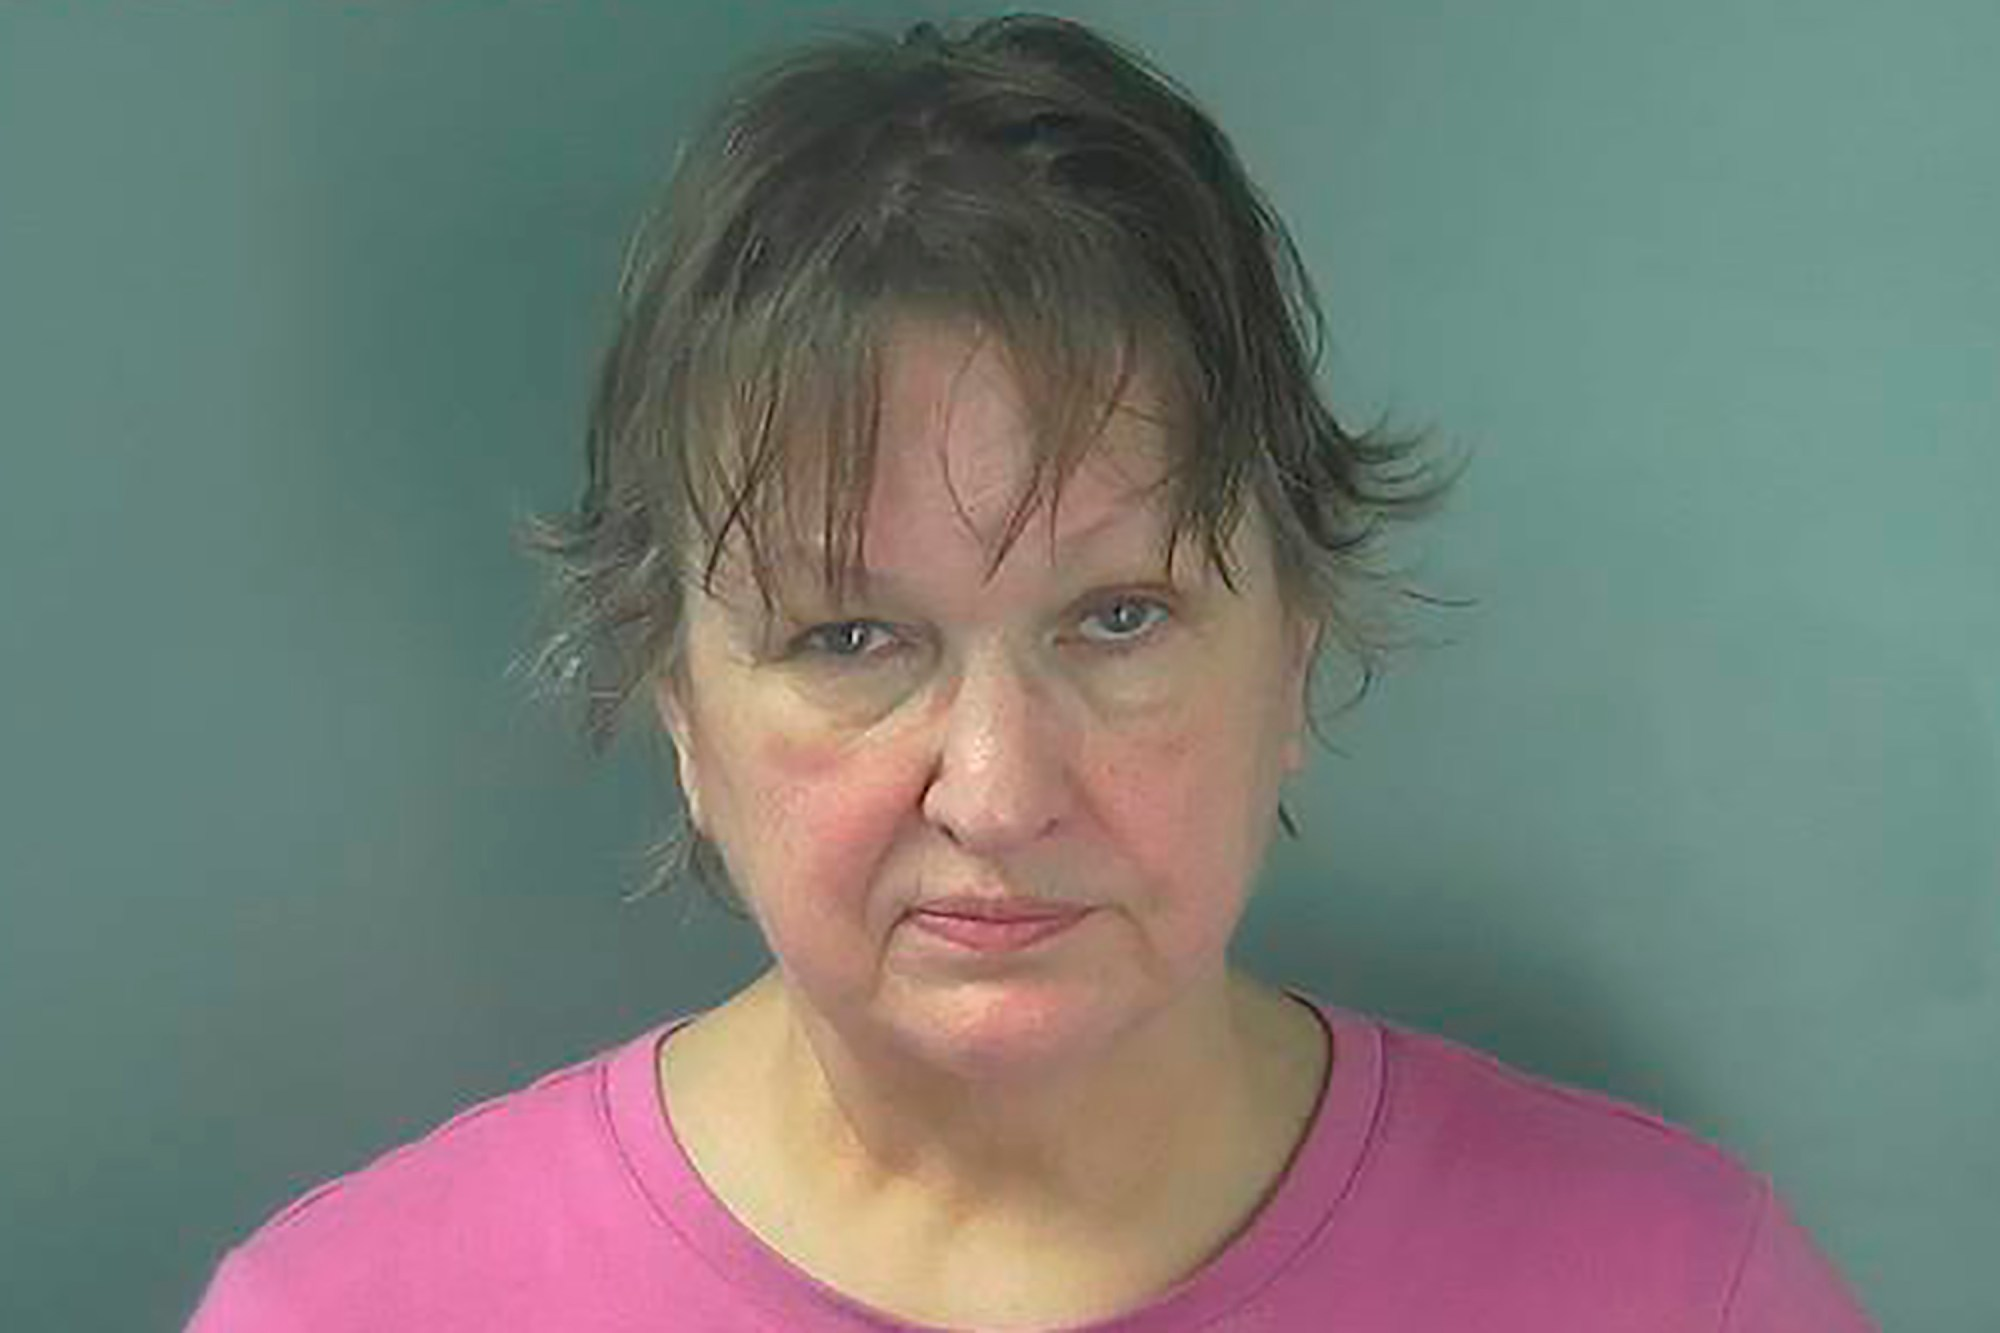 This photo provided by the Monroe County Correctional Center in Bloomington, Ind., shows Christi Bennett on Thursday, July 9, 2020. Bennett, an Indiana woman, was been arrested in a hit-and-run crash that sent one woman to the hospital and caused minor injuries to a man during a southern Indiana protest over the assault of a Black man by a group of white men on June 6. (Monroe County Correctional Center via AP)